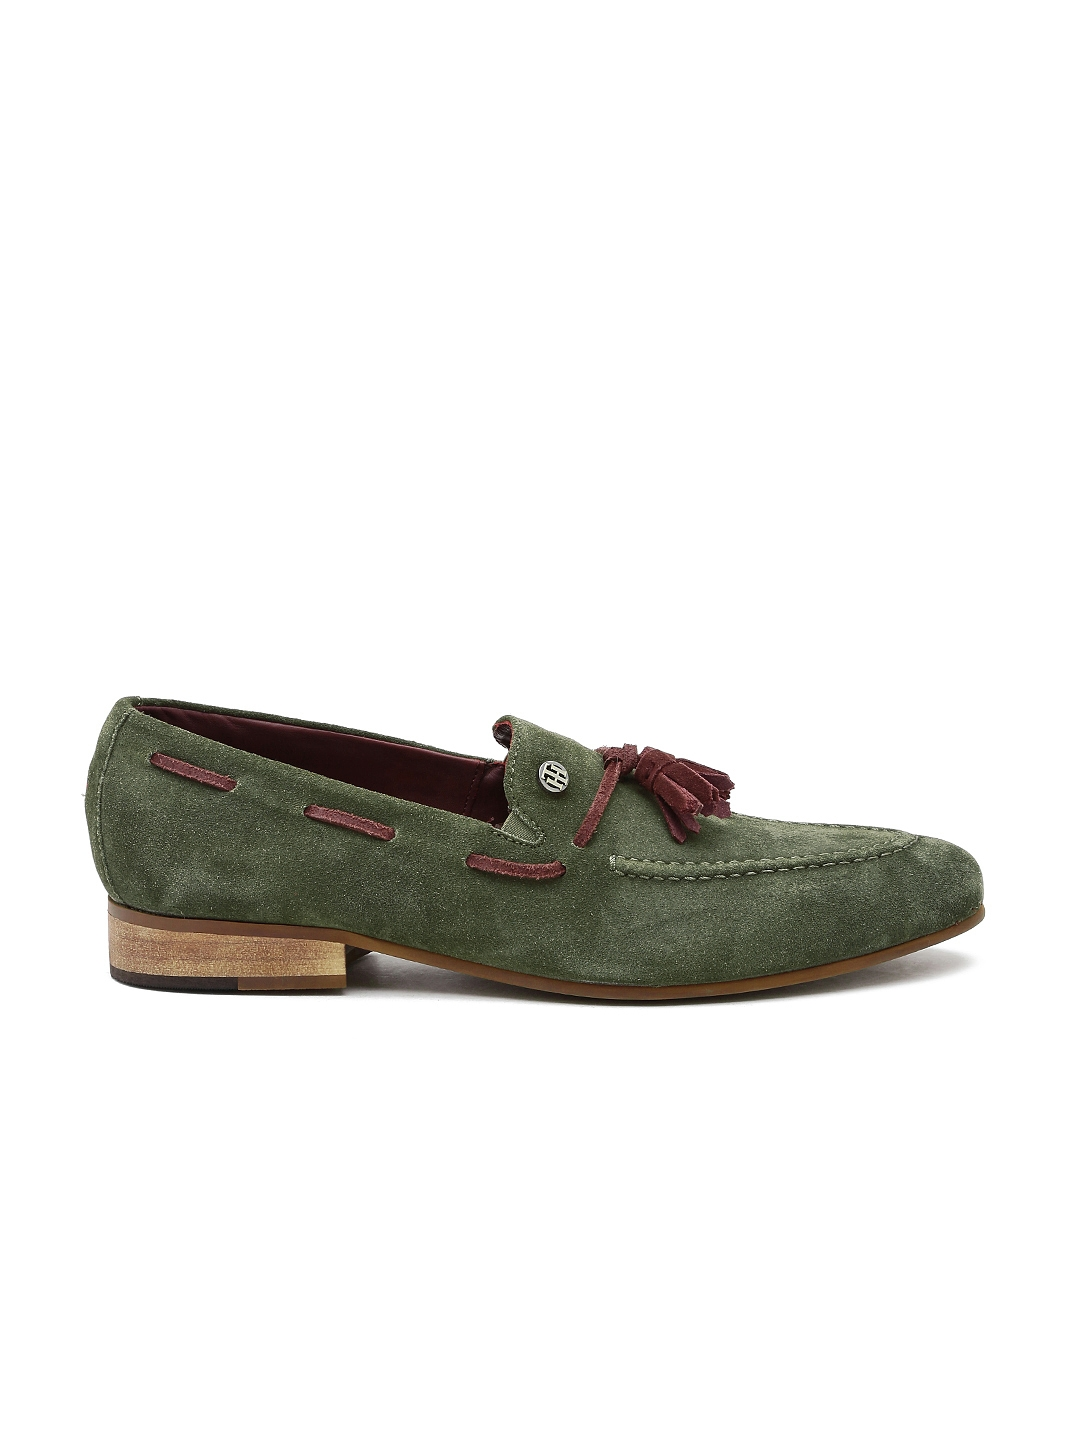 4de798e98816 Buy Tommy Hilfiger Men Olive Green Suede Loafers - Casual Shoes for ...